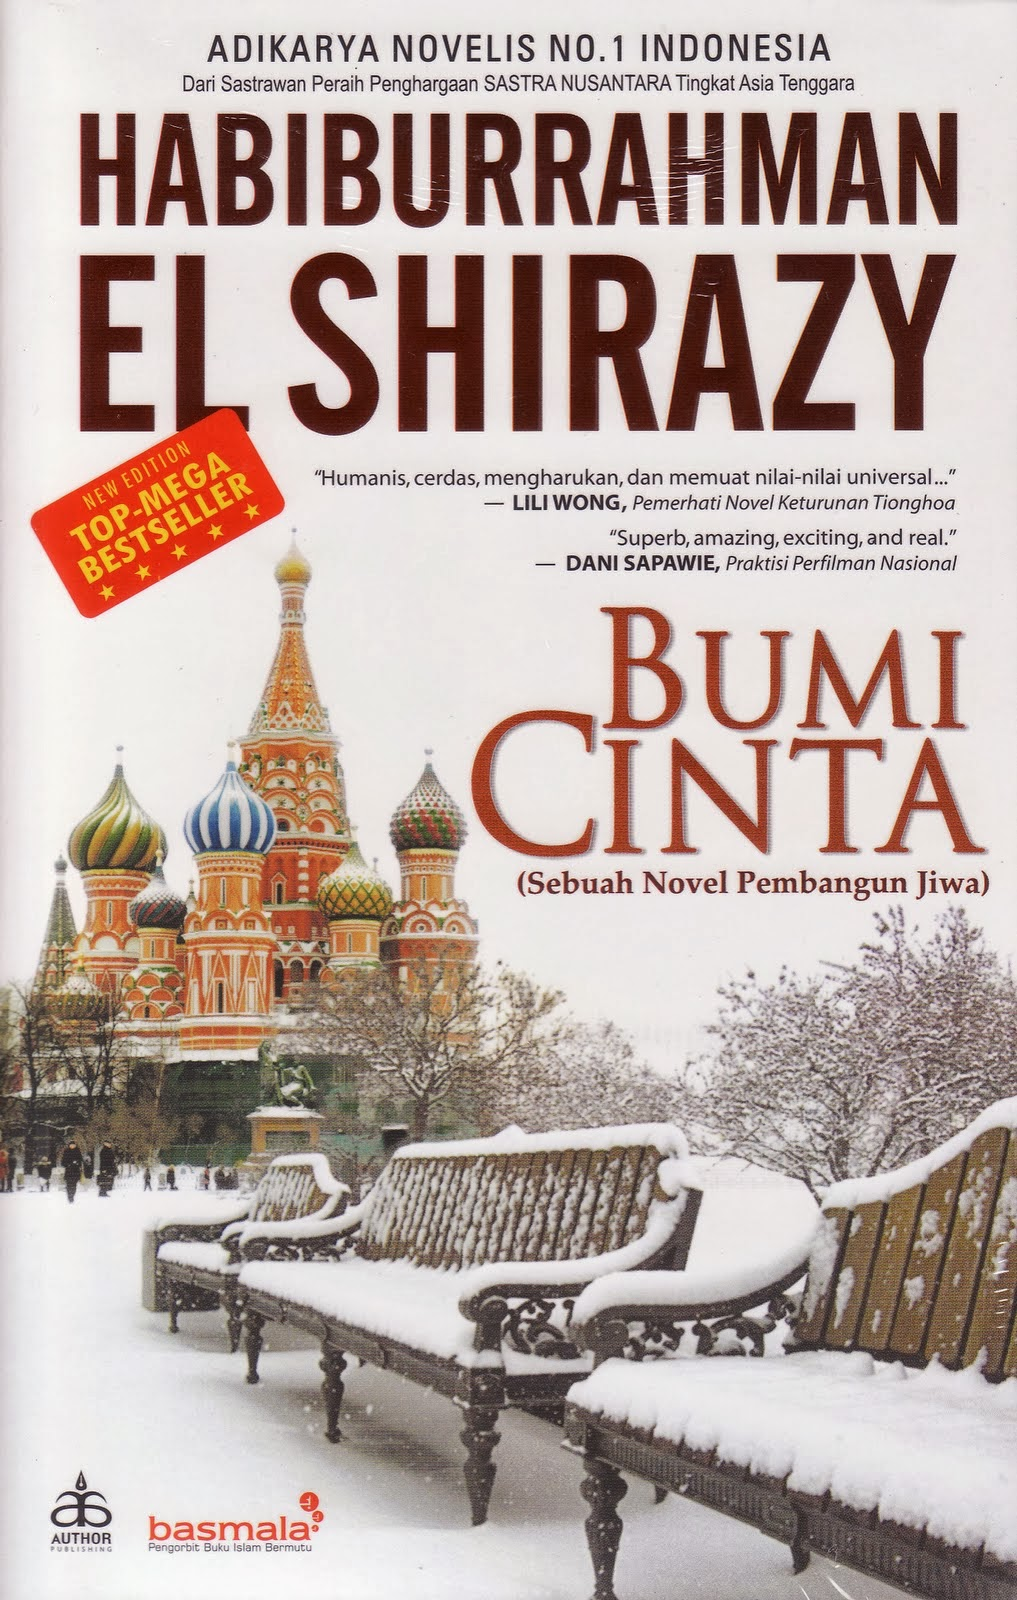 EBOOK SETETES EMBUN CINTA NIYALA EBOOK DOWNLOAD